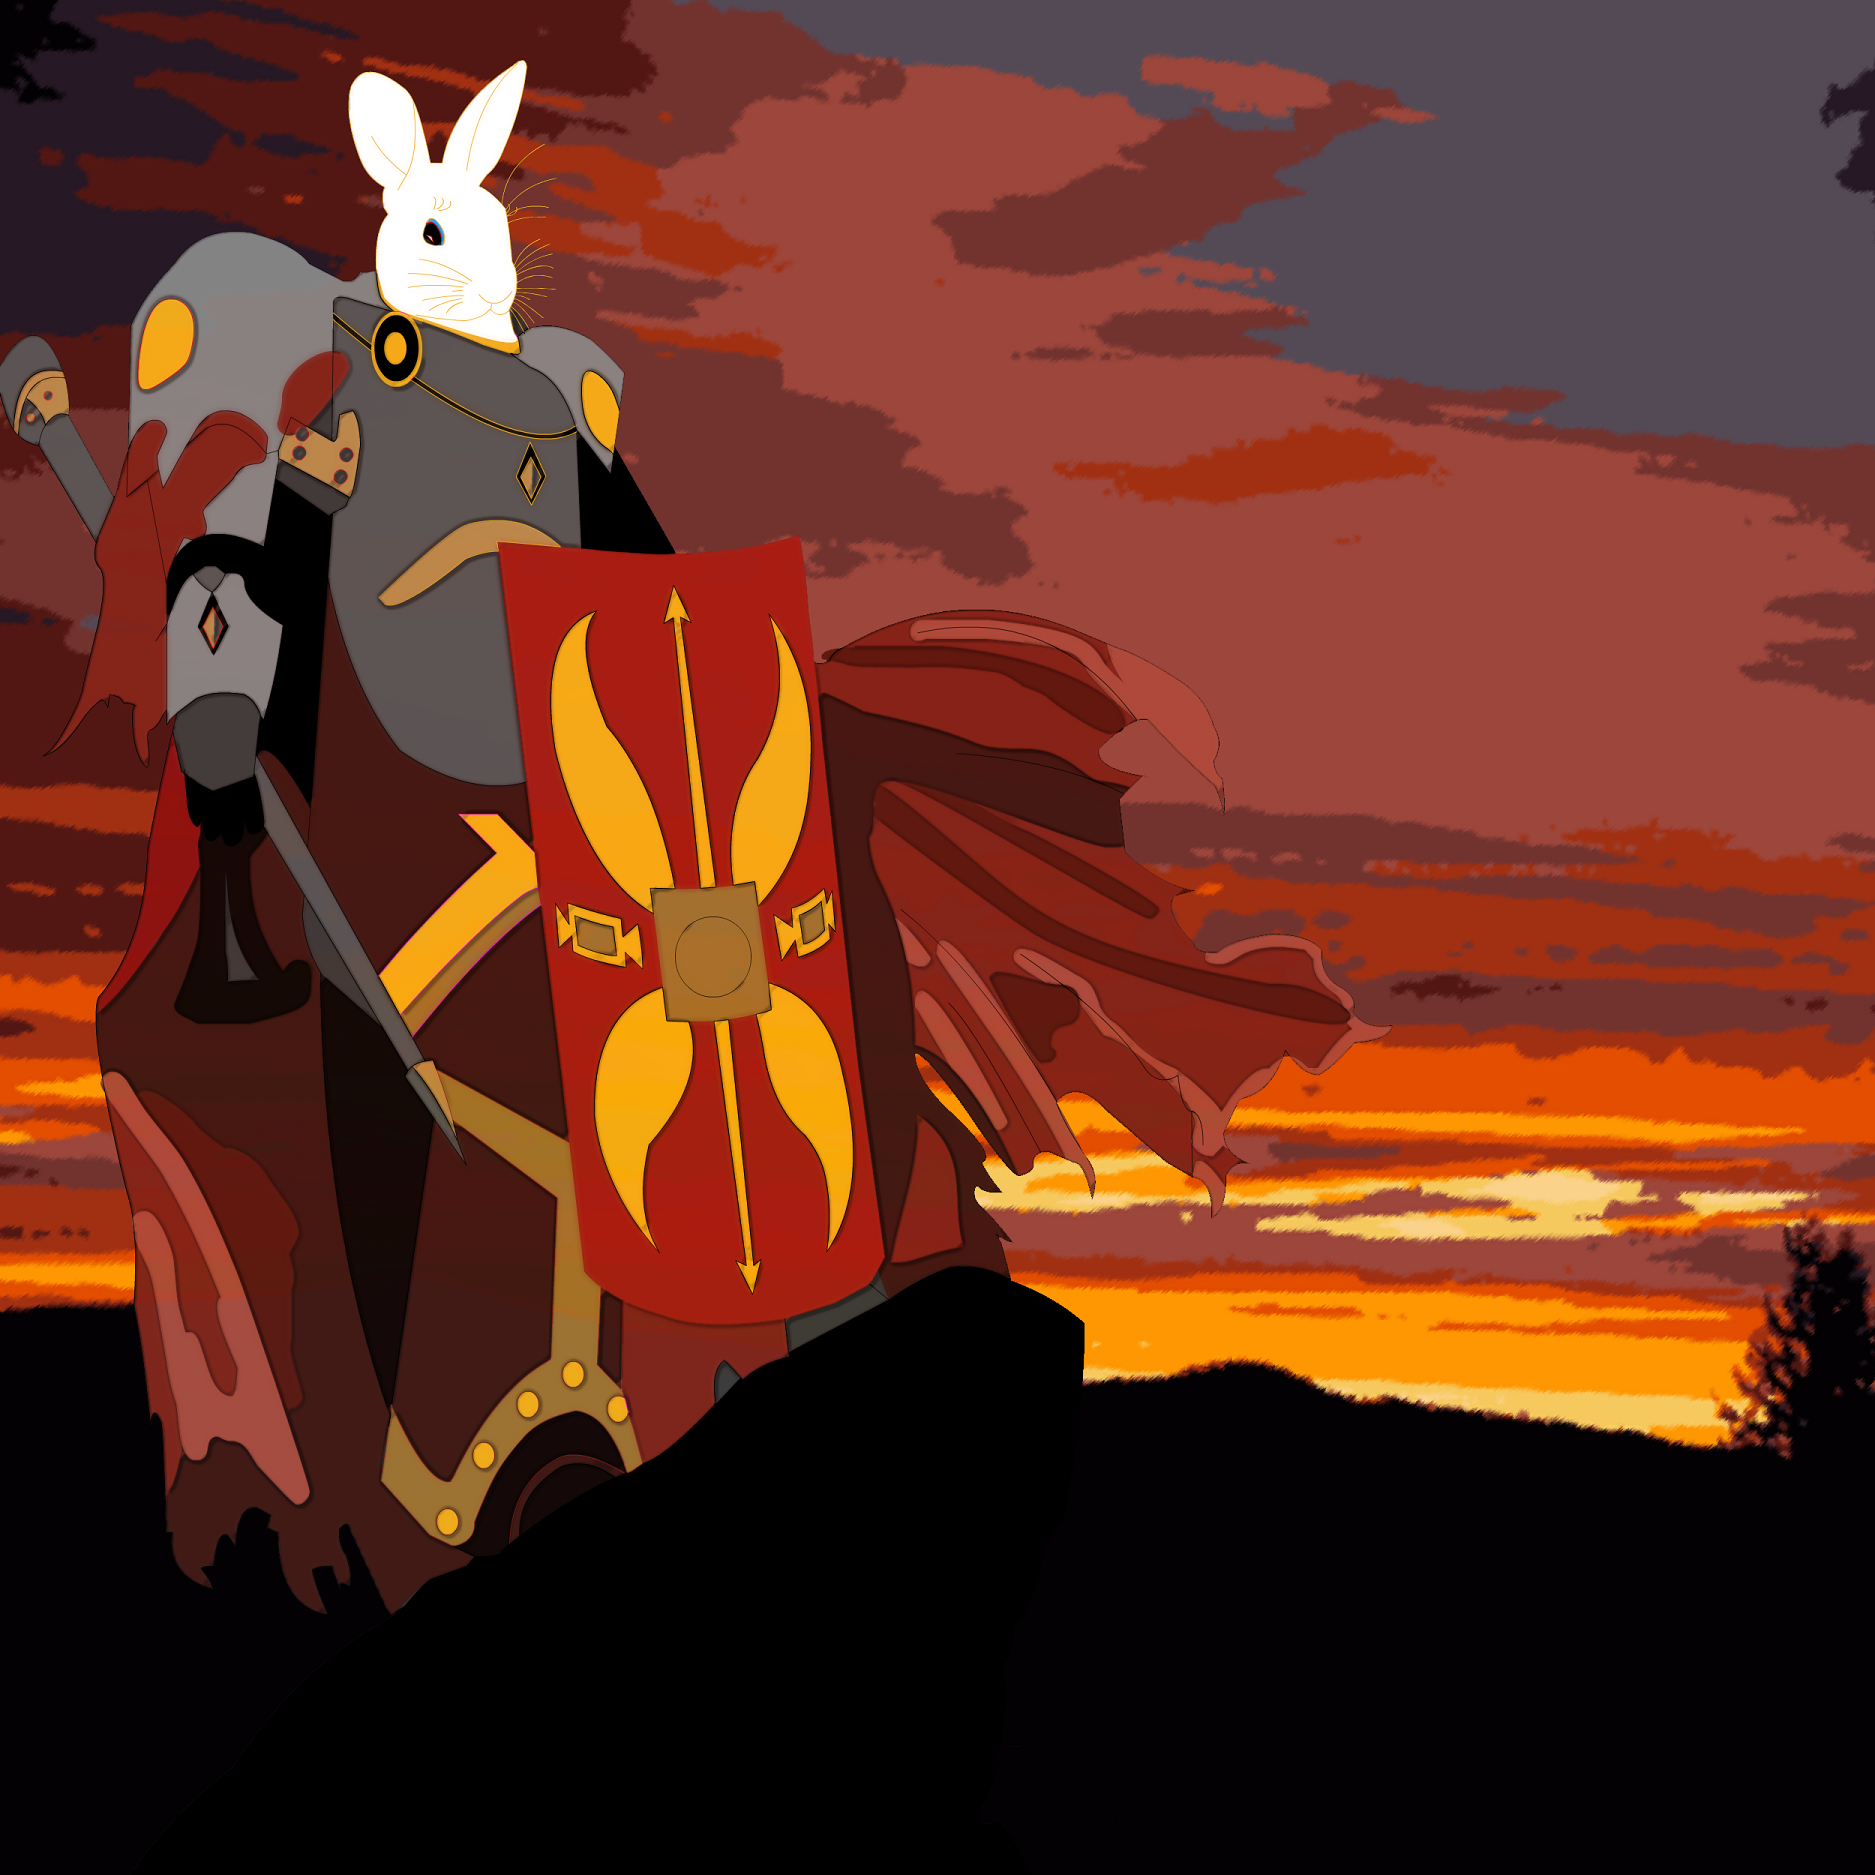 A rabbit warrior wearing Roman-style armour stands atop a cliff. Drawn in Flash/Animate.